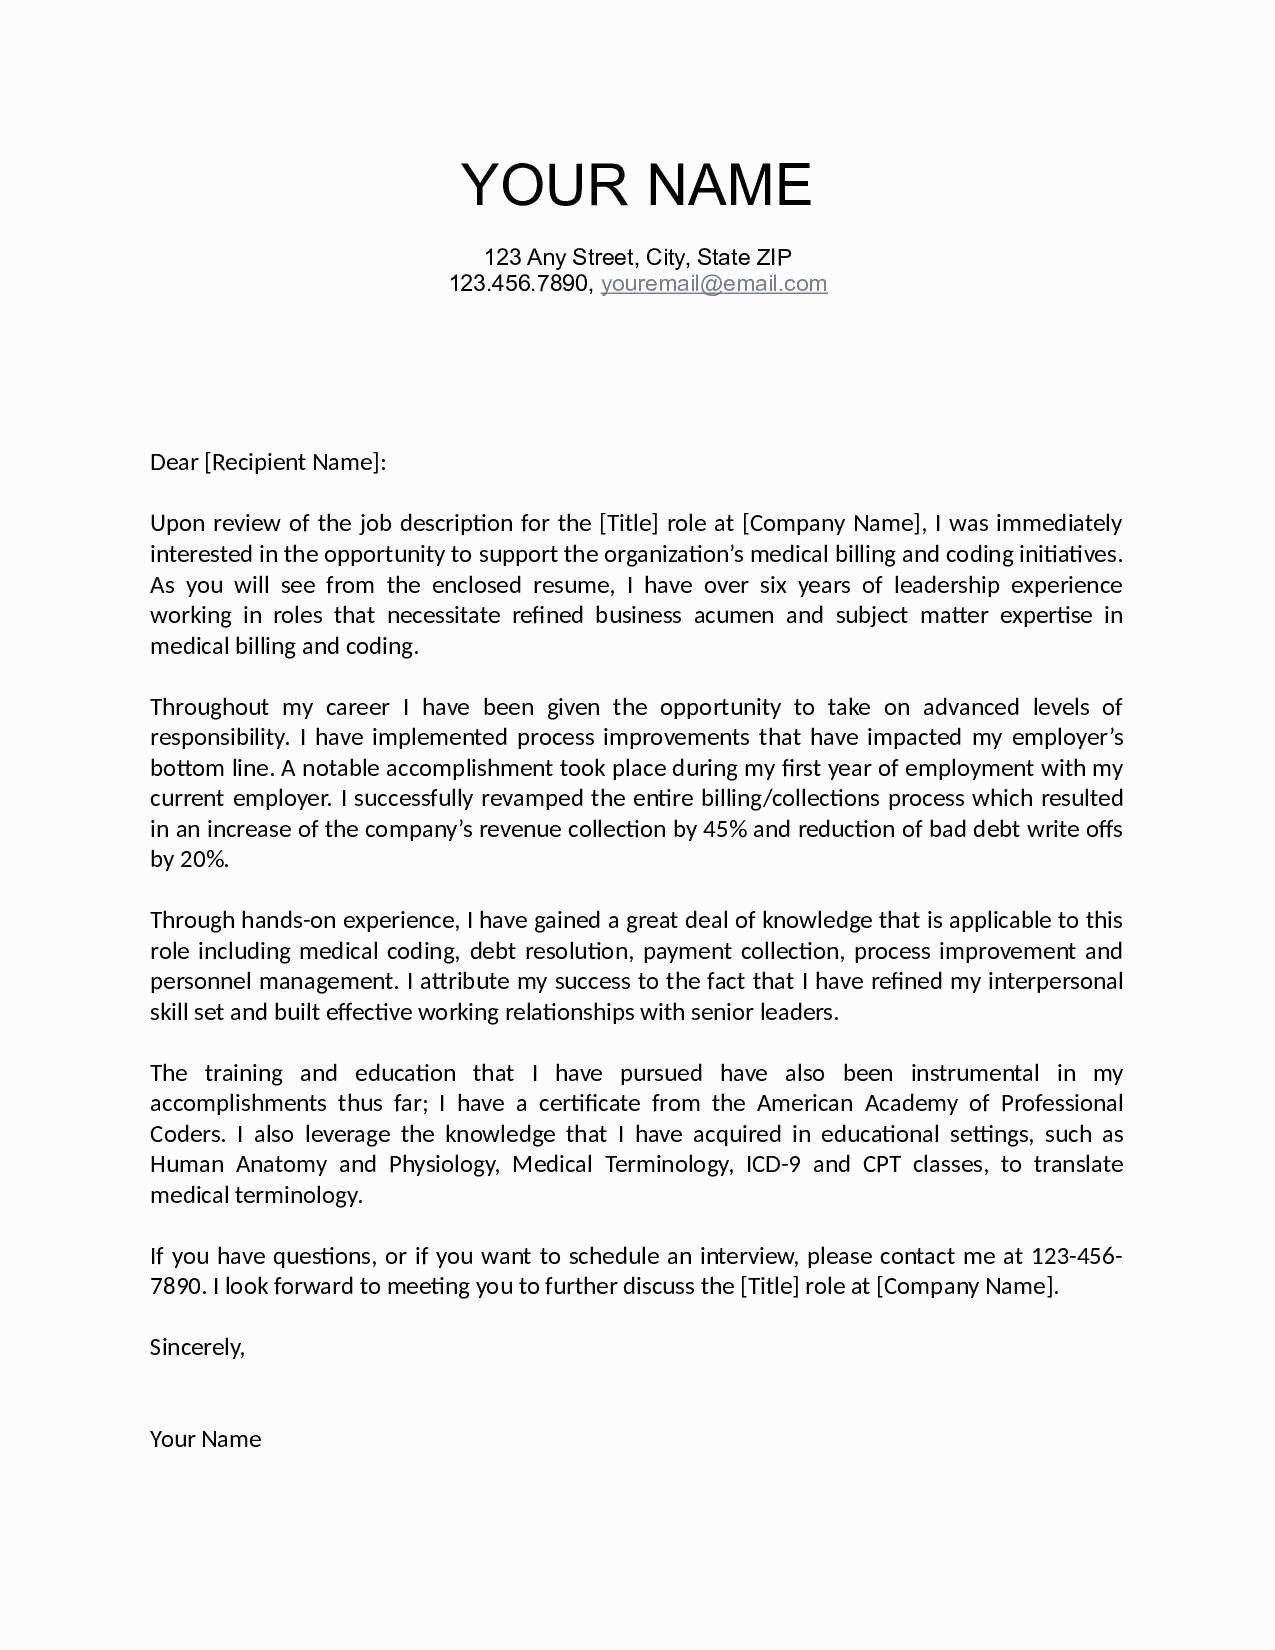 Loan Payoff Letter Template - Loan Payoff Letter Sample Beautiful Job Fer Letter Template Us Copy